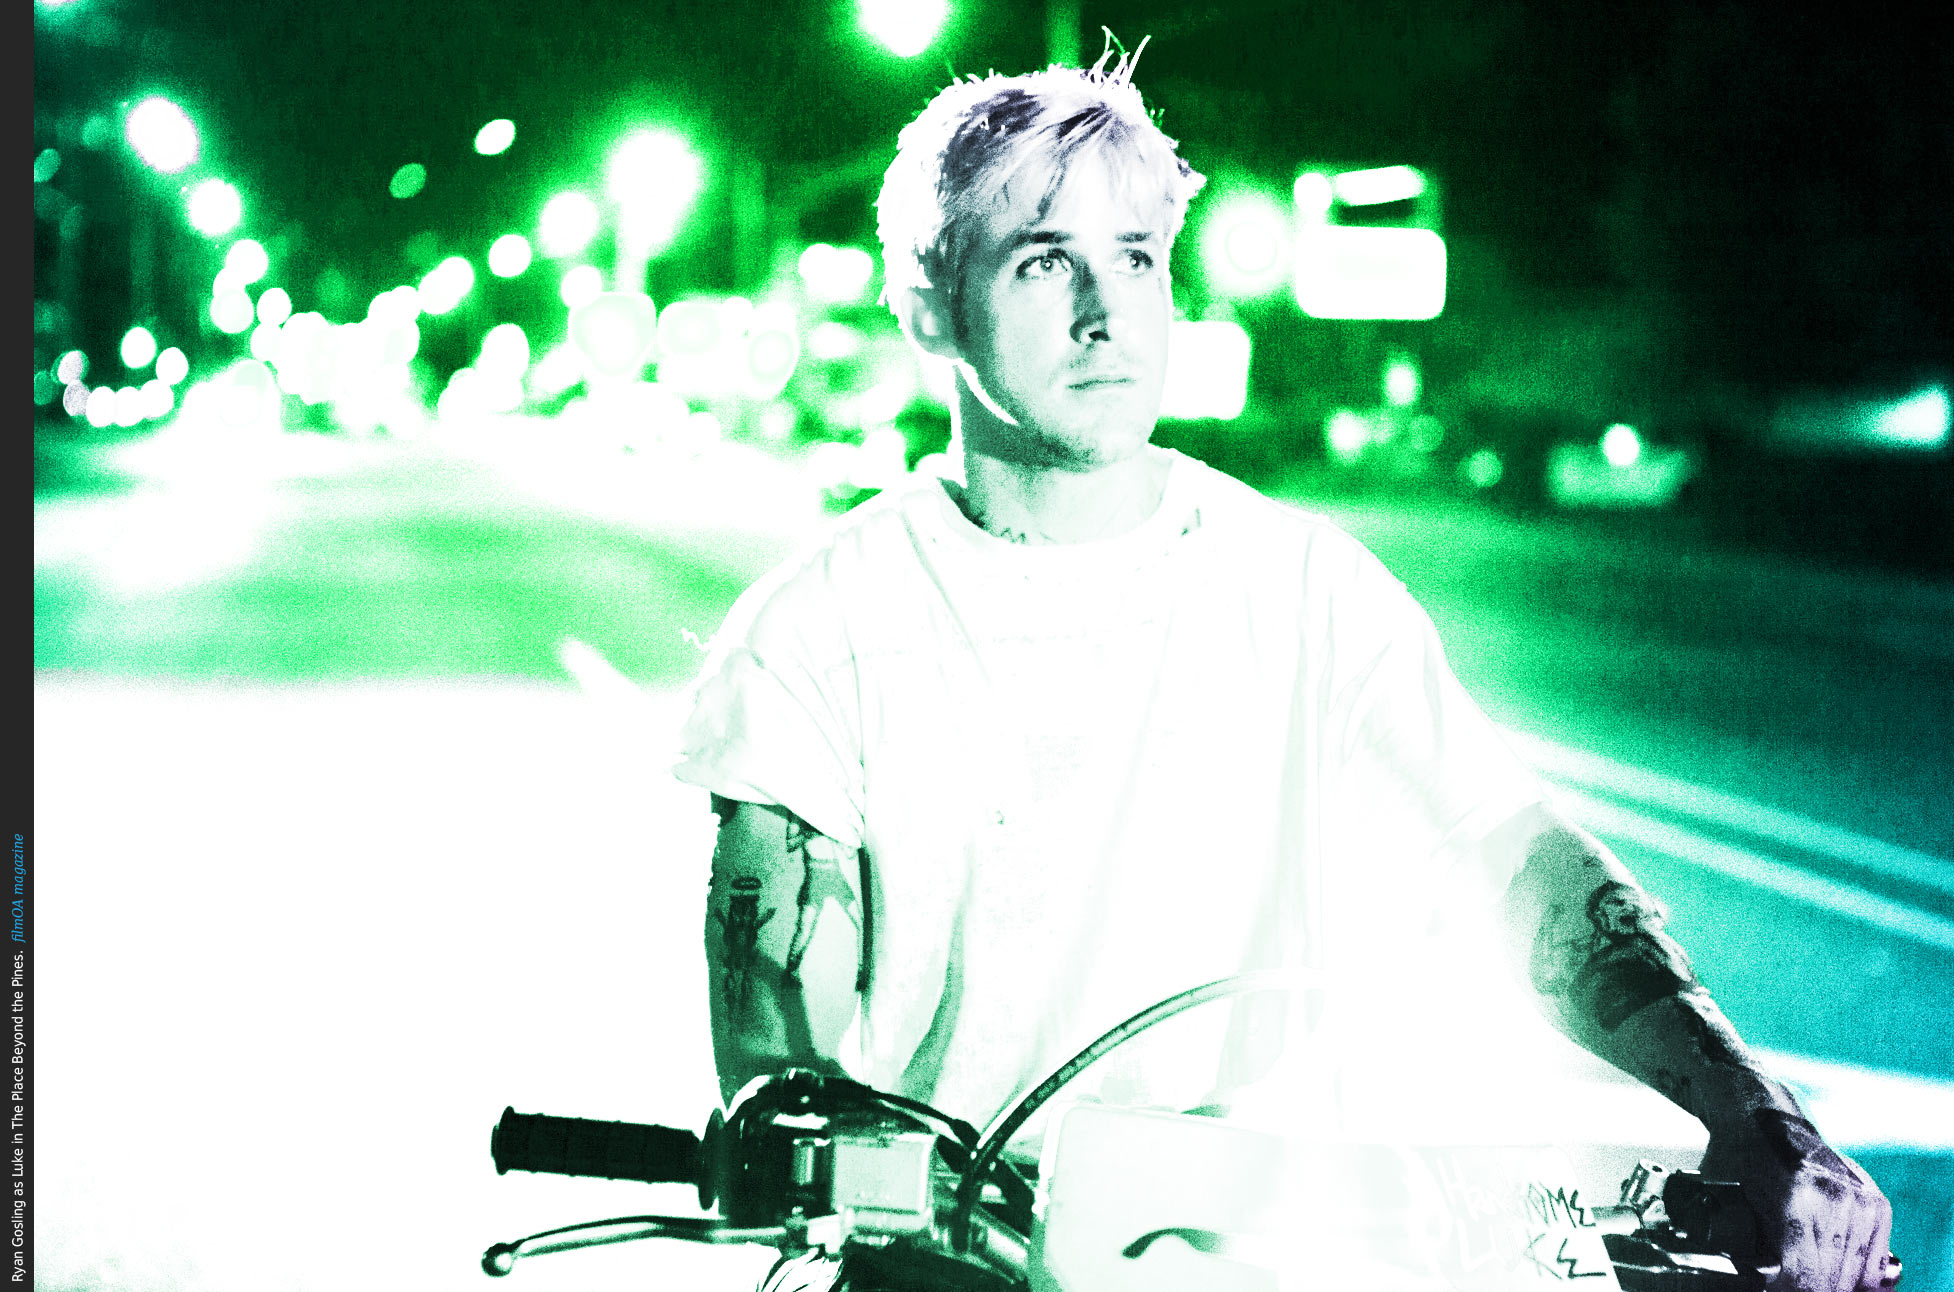 Ryan Gosling as Luke in The Place Beyond the Pines Poster filmOAThe Place Beyond The Pines Ryan